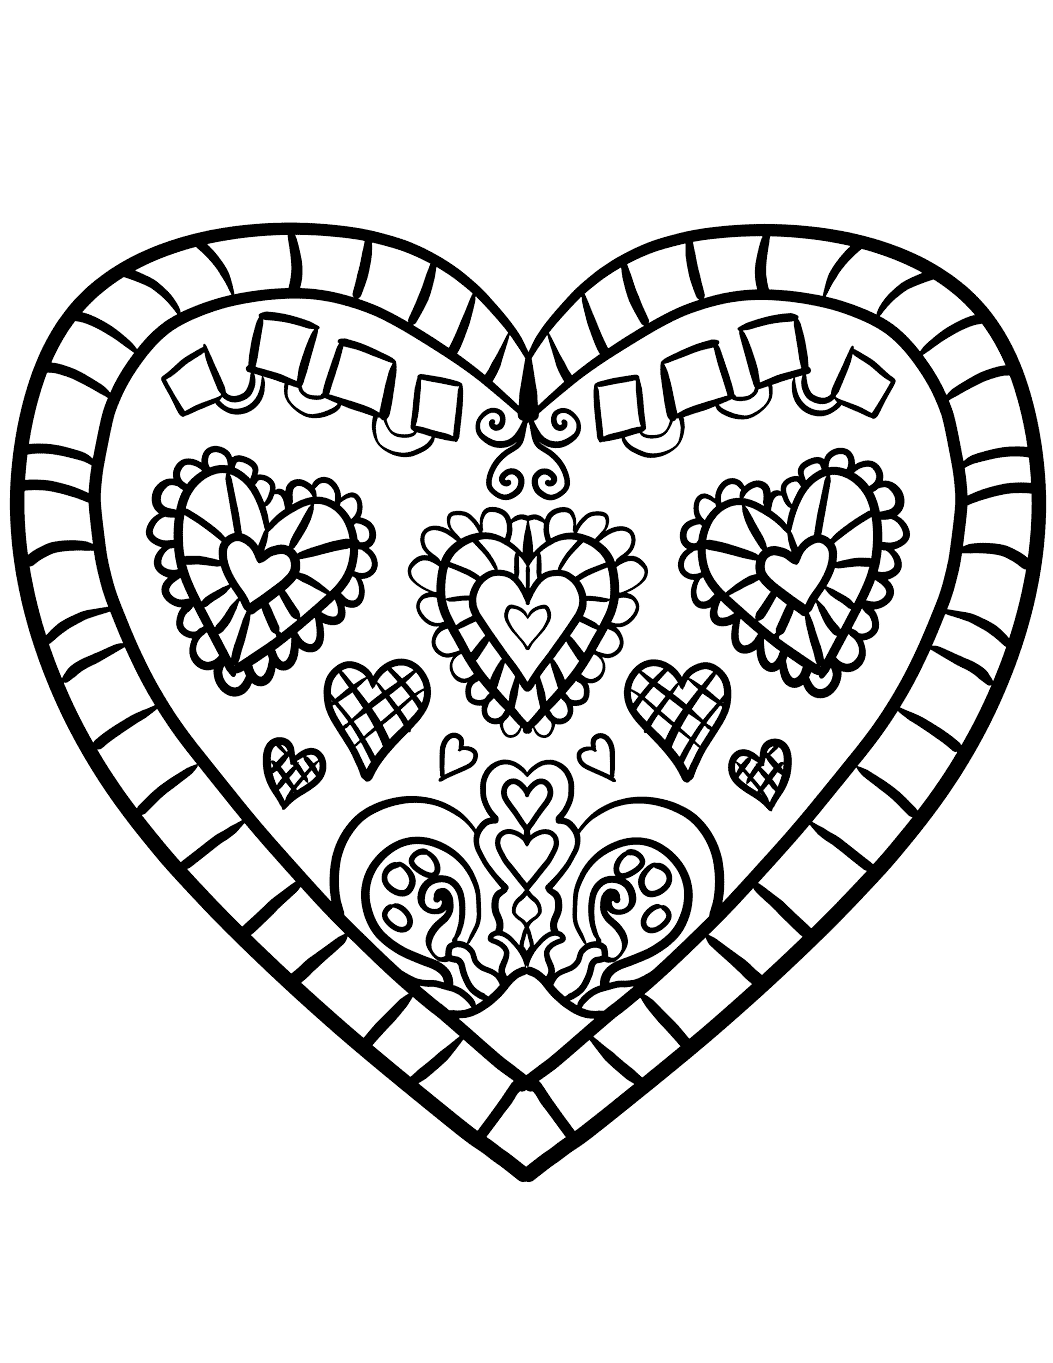 Hearts Coloring Pages for Adults Best Coloring Pages For